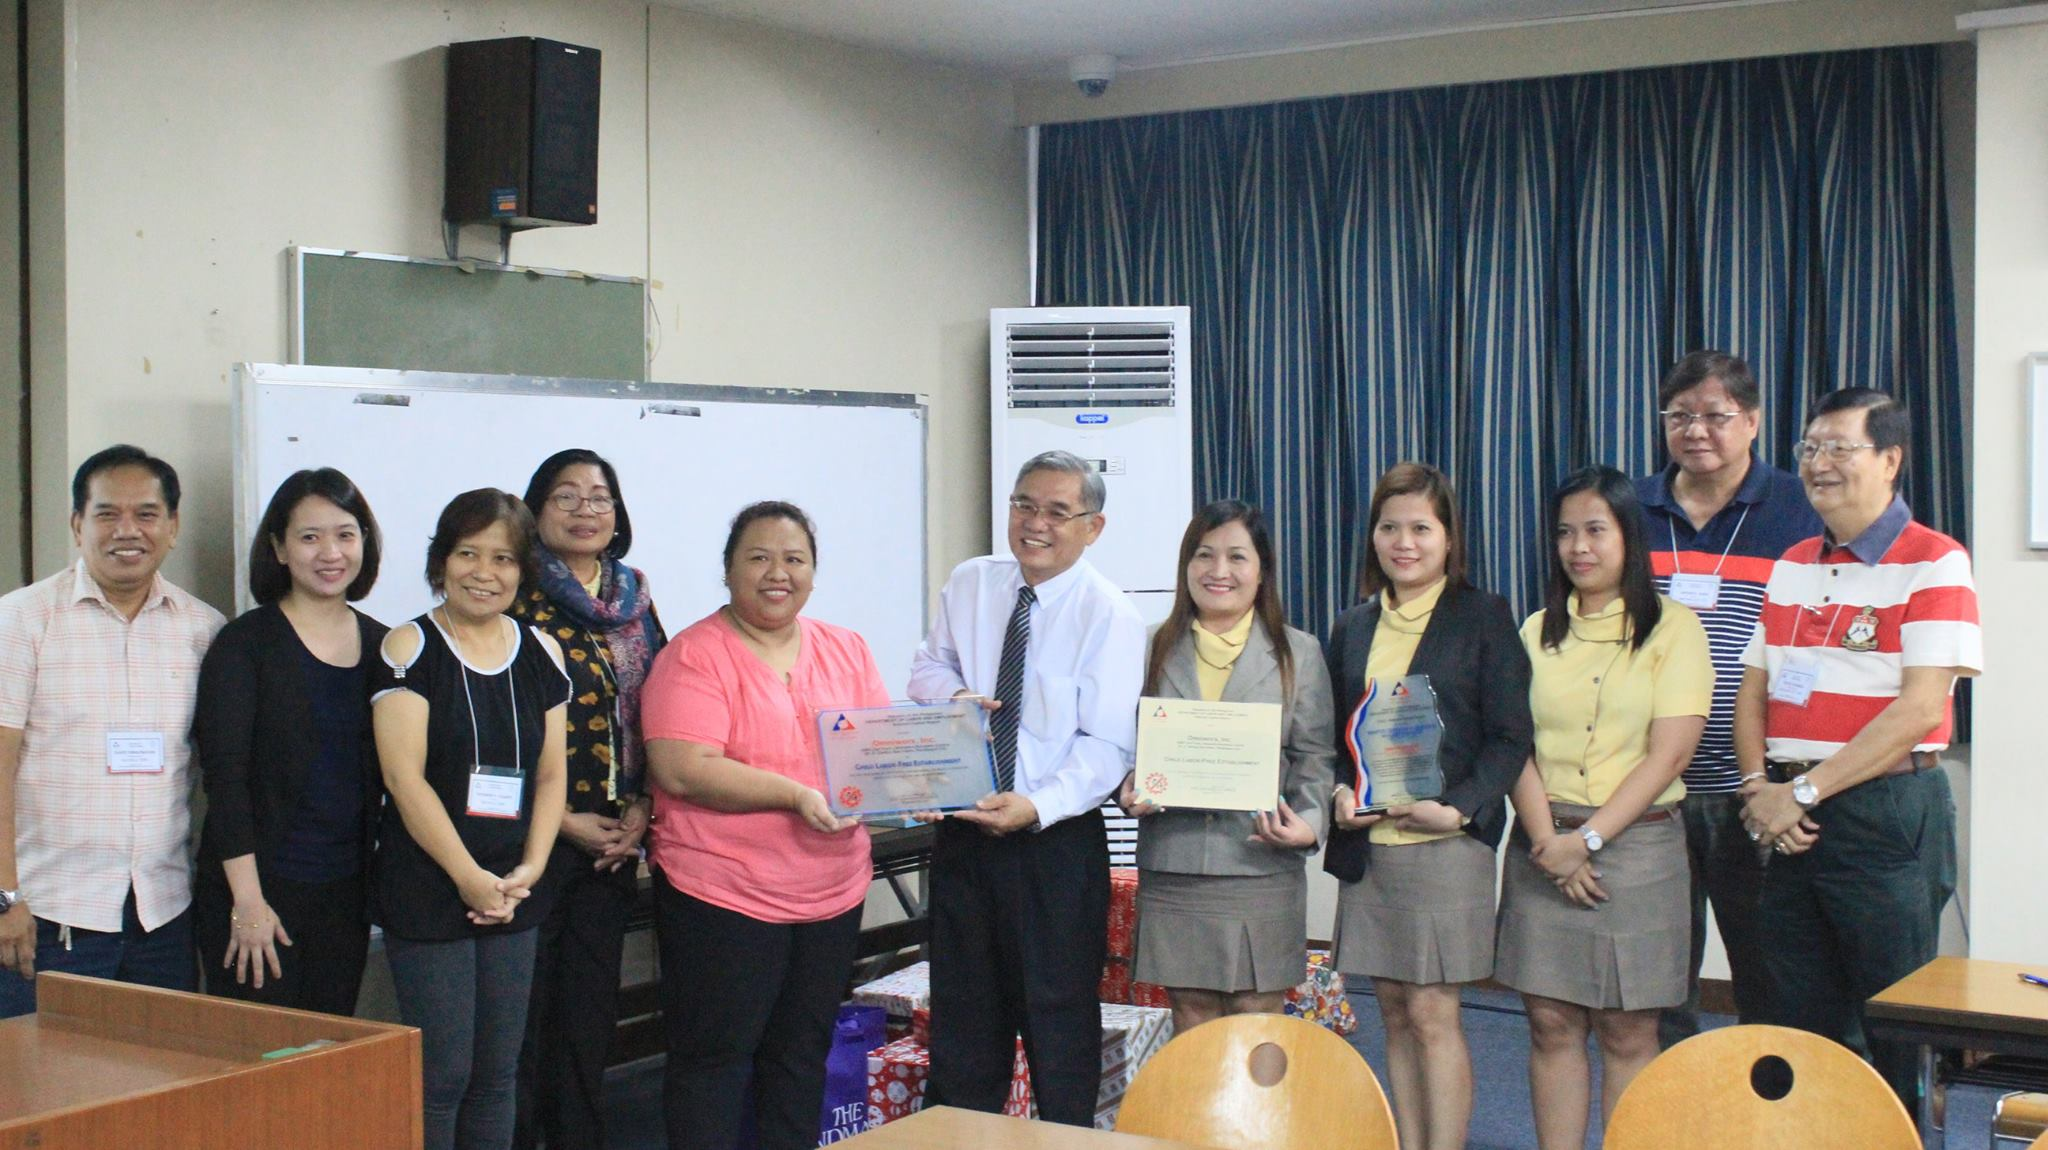 December 1,2016 - Awarding of Tripartite Certificate of Compliance with Labor Standards